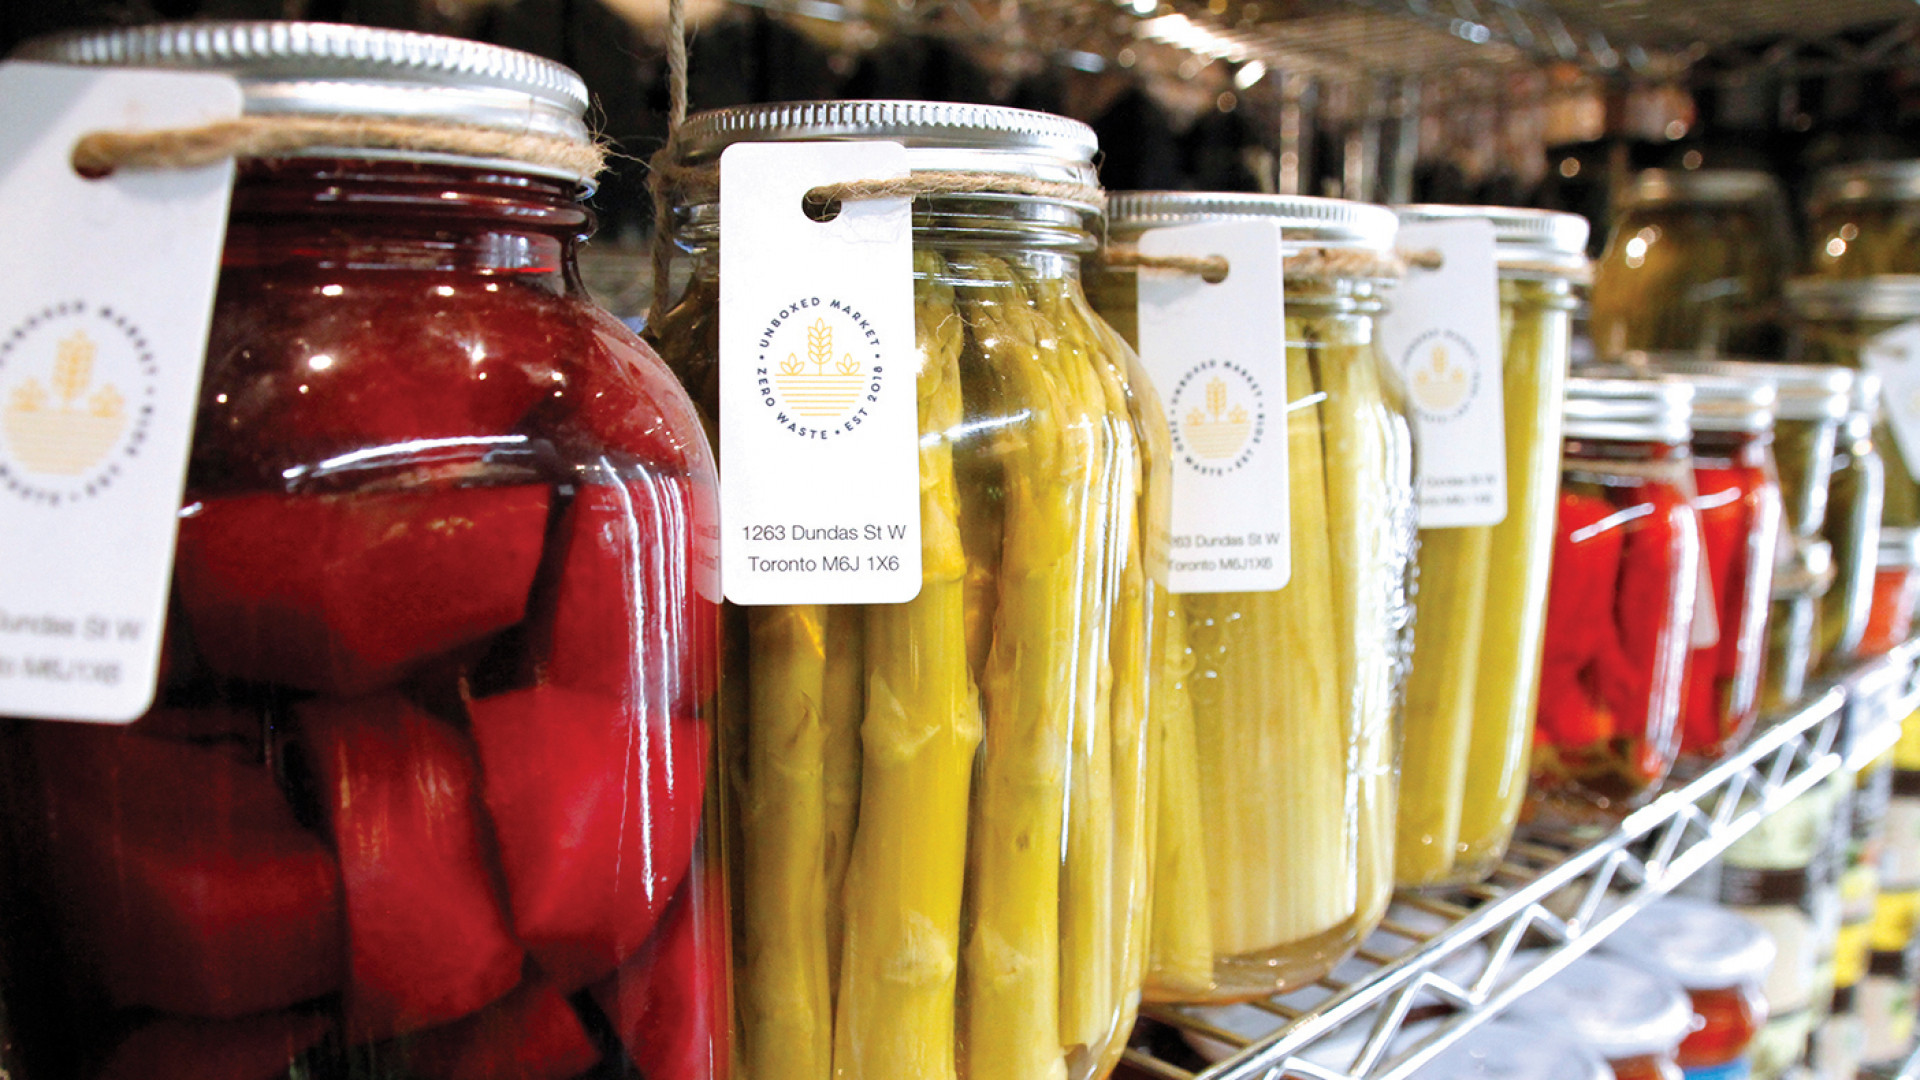 Unboxed Market, Zero waste grocery store and refillery | Pickles and preserves are sold in glass jars